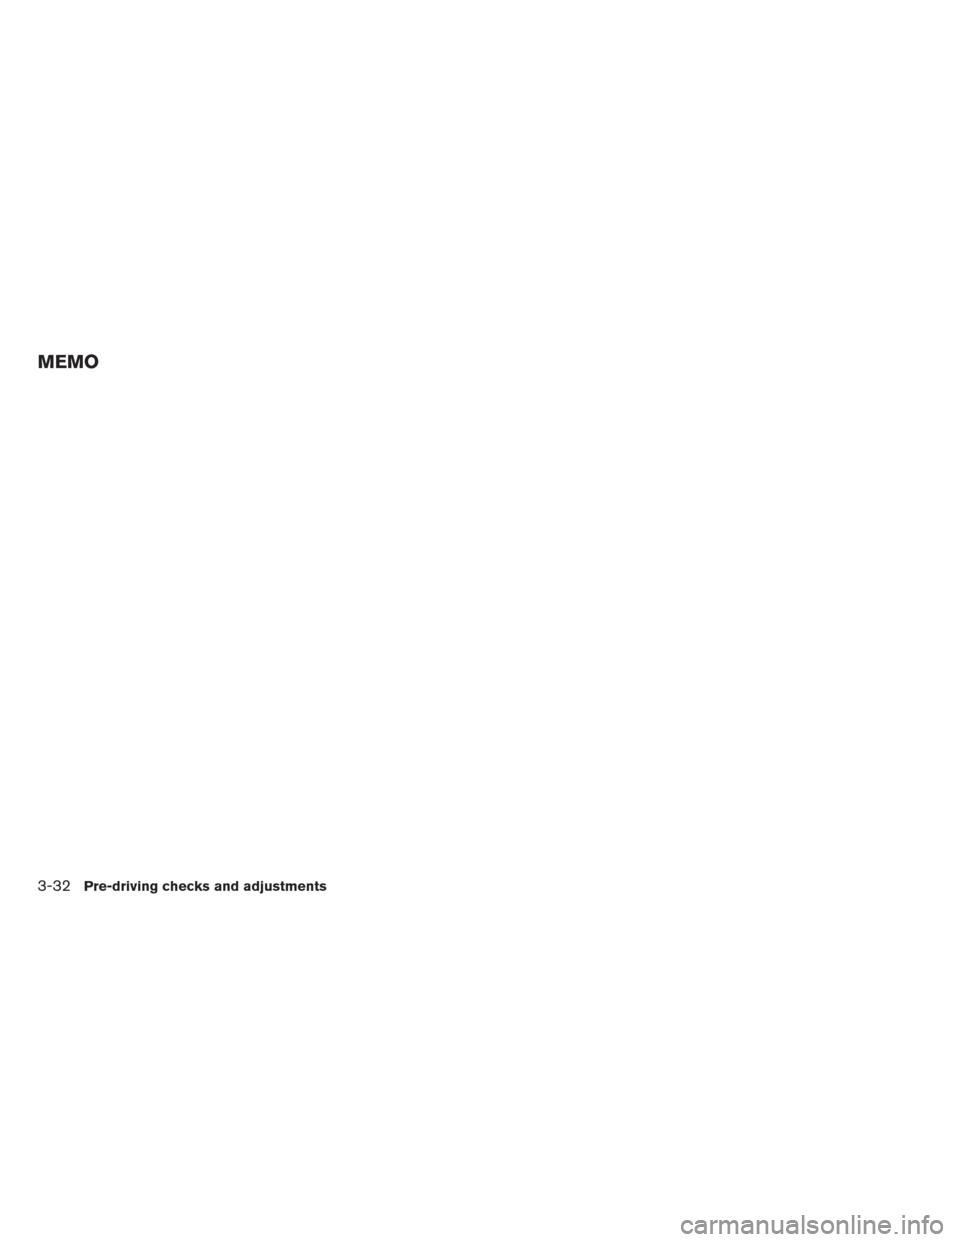 NISSAN MAXIMA 2012 A35 / 7.G Owners Manual MEMO 3-32Pre-driving checks and adjustments